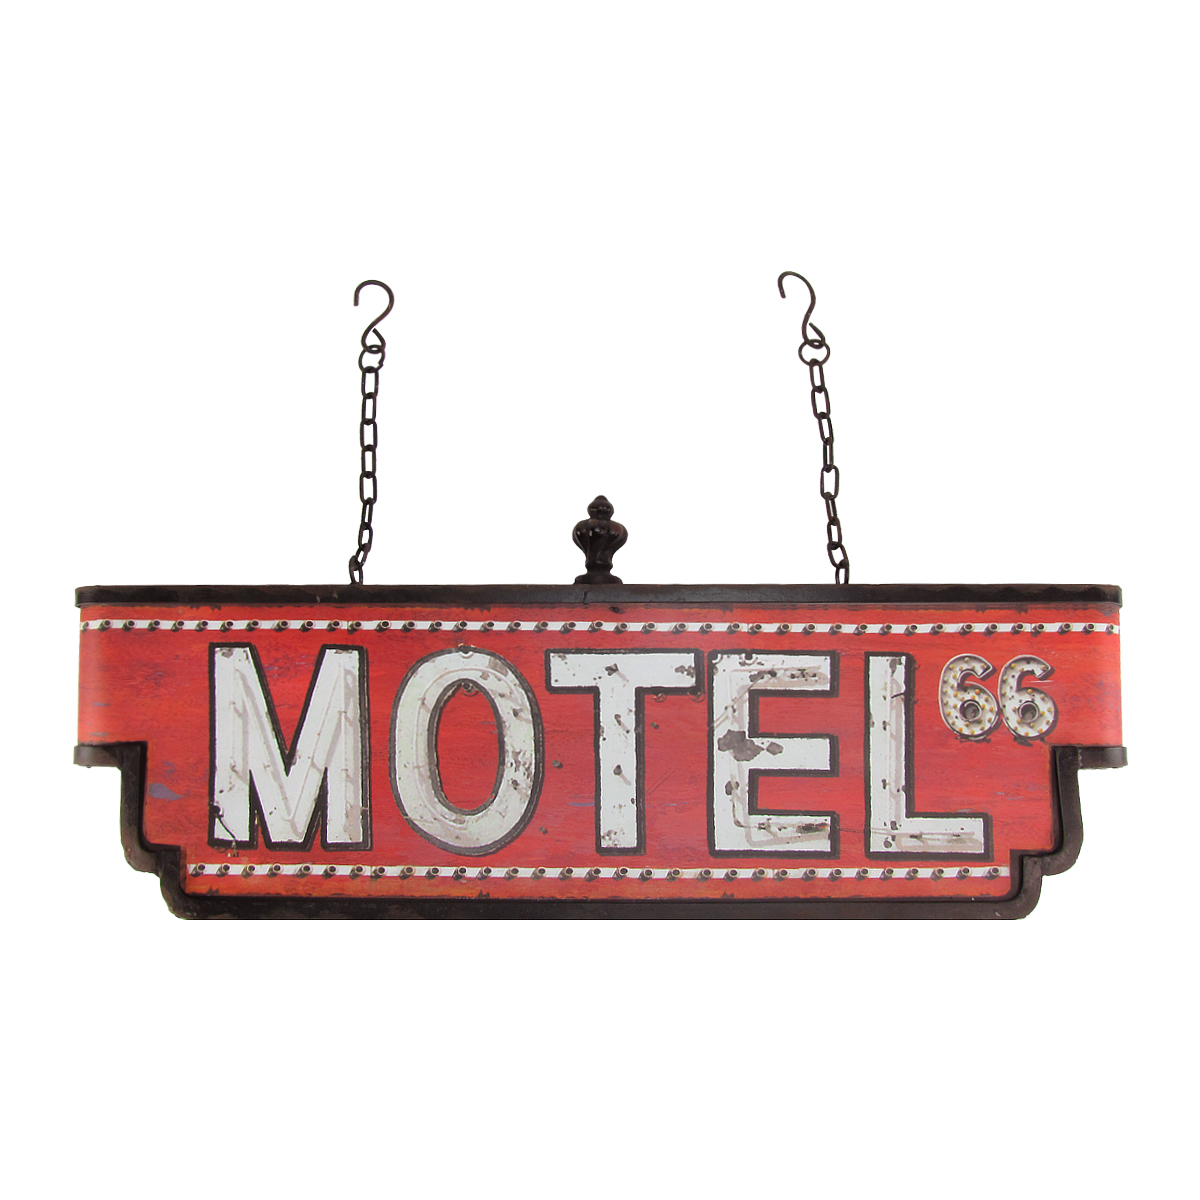 Large 3D Metal Hanging Motel Route 66 Sign Vintage Retro Home/Bar/Pub Wall Decor